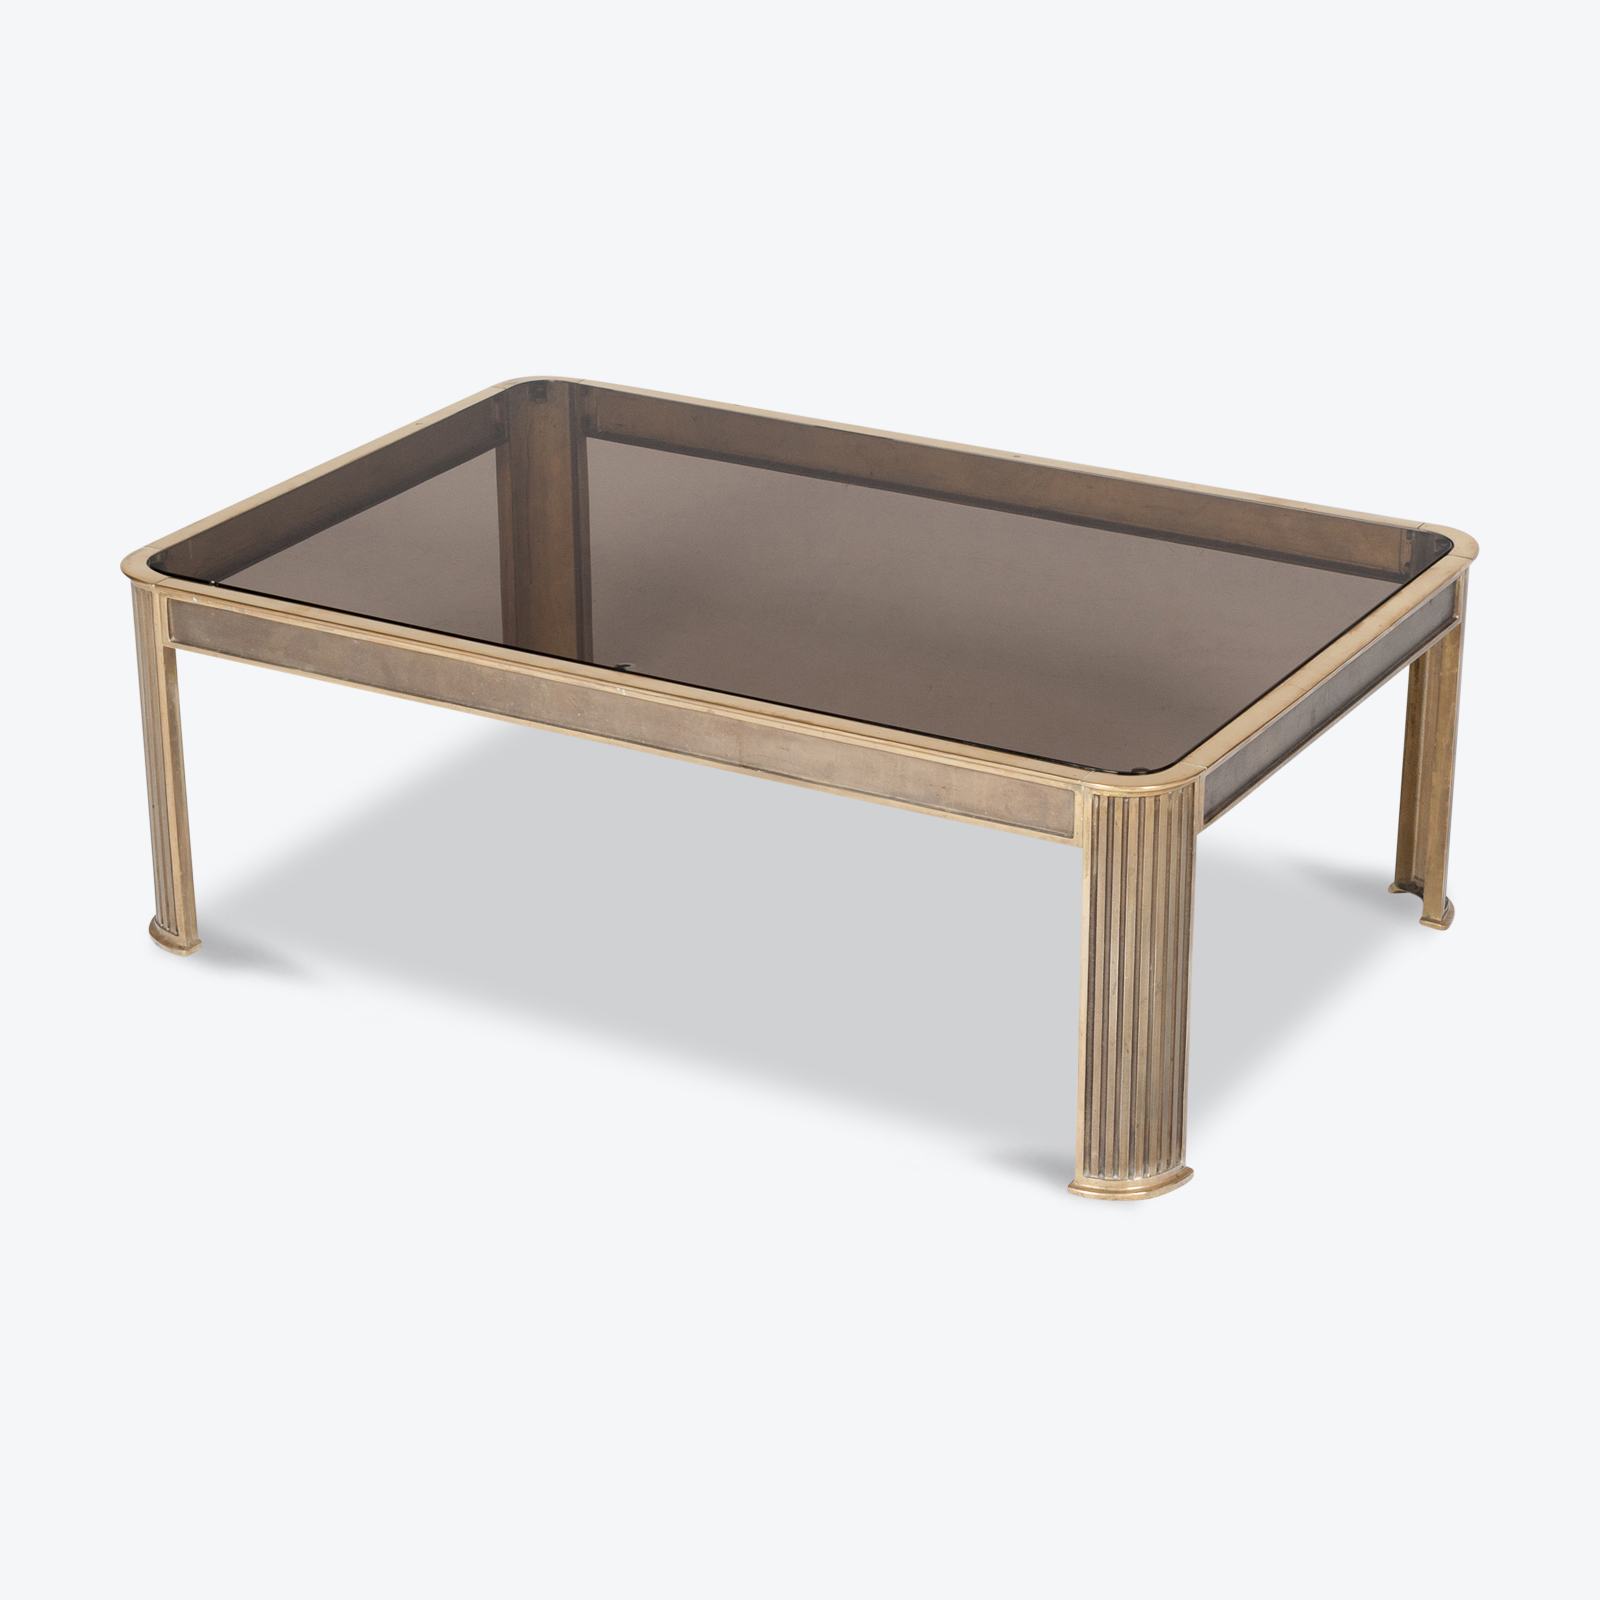 Rectangular Coffee Table With Solid Brass Frame By Peter Ghyczy, 1970s, The Netherlands Hero